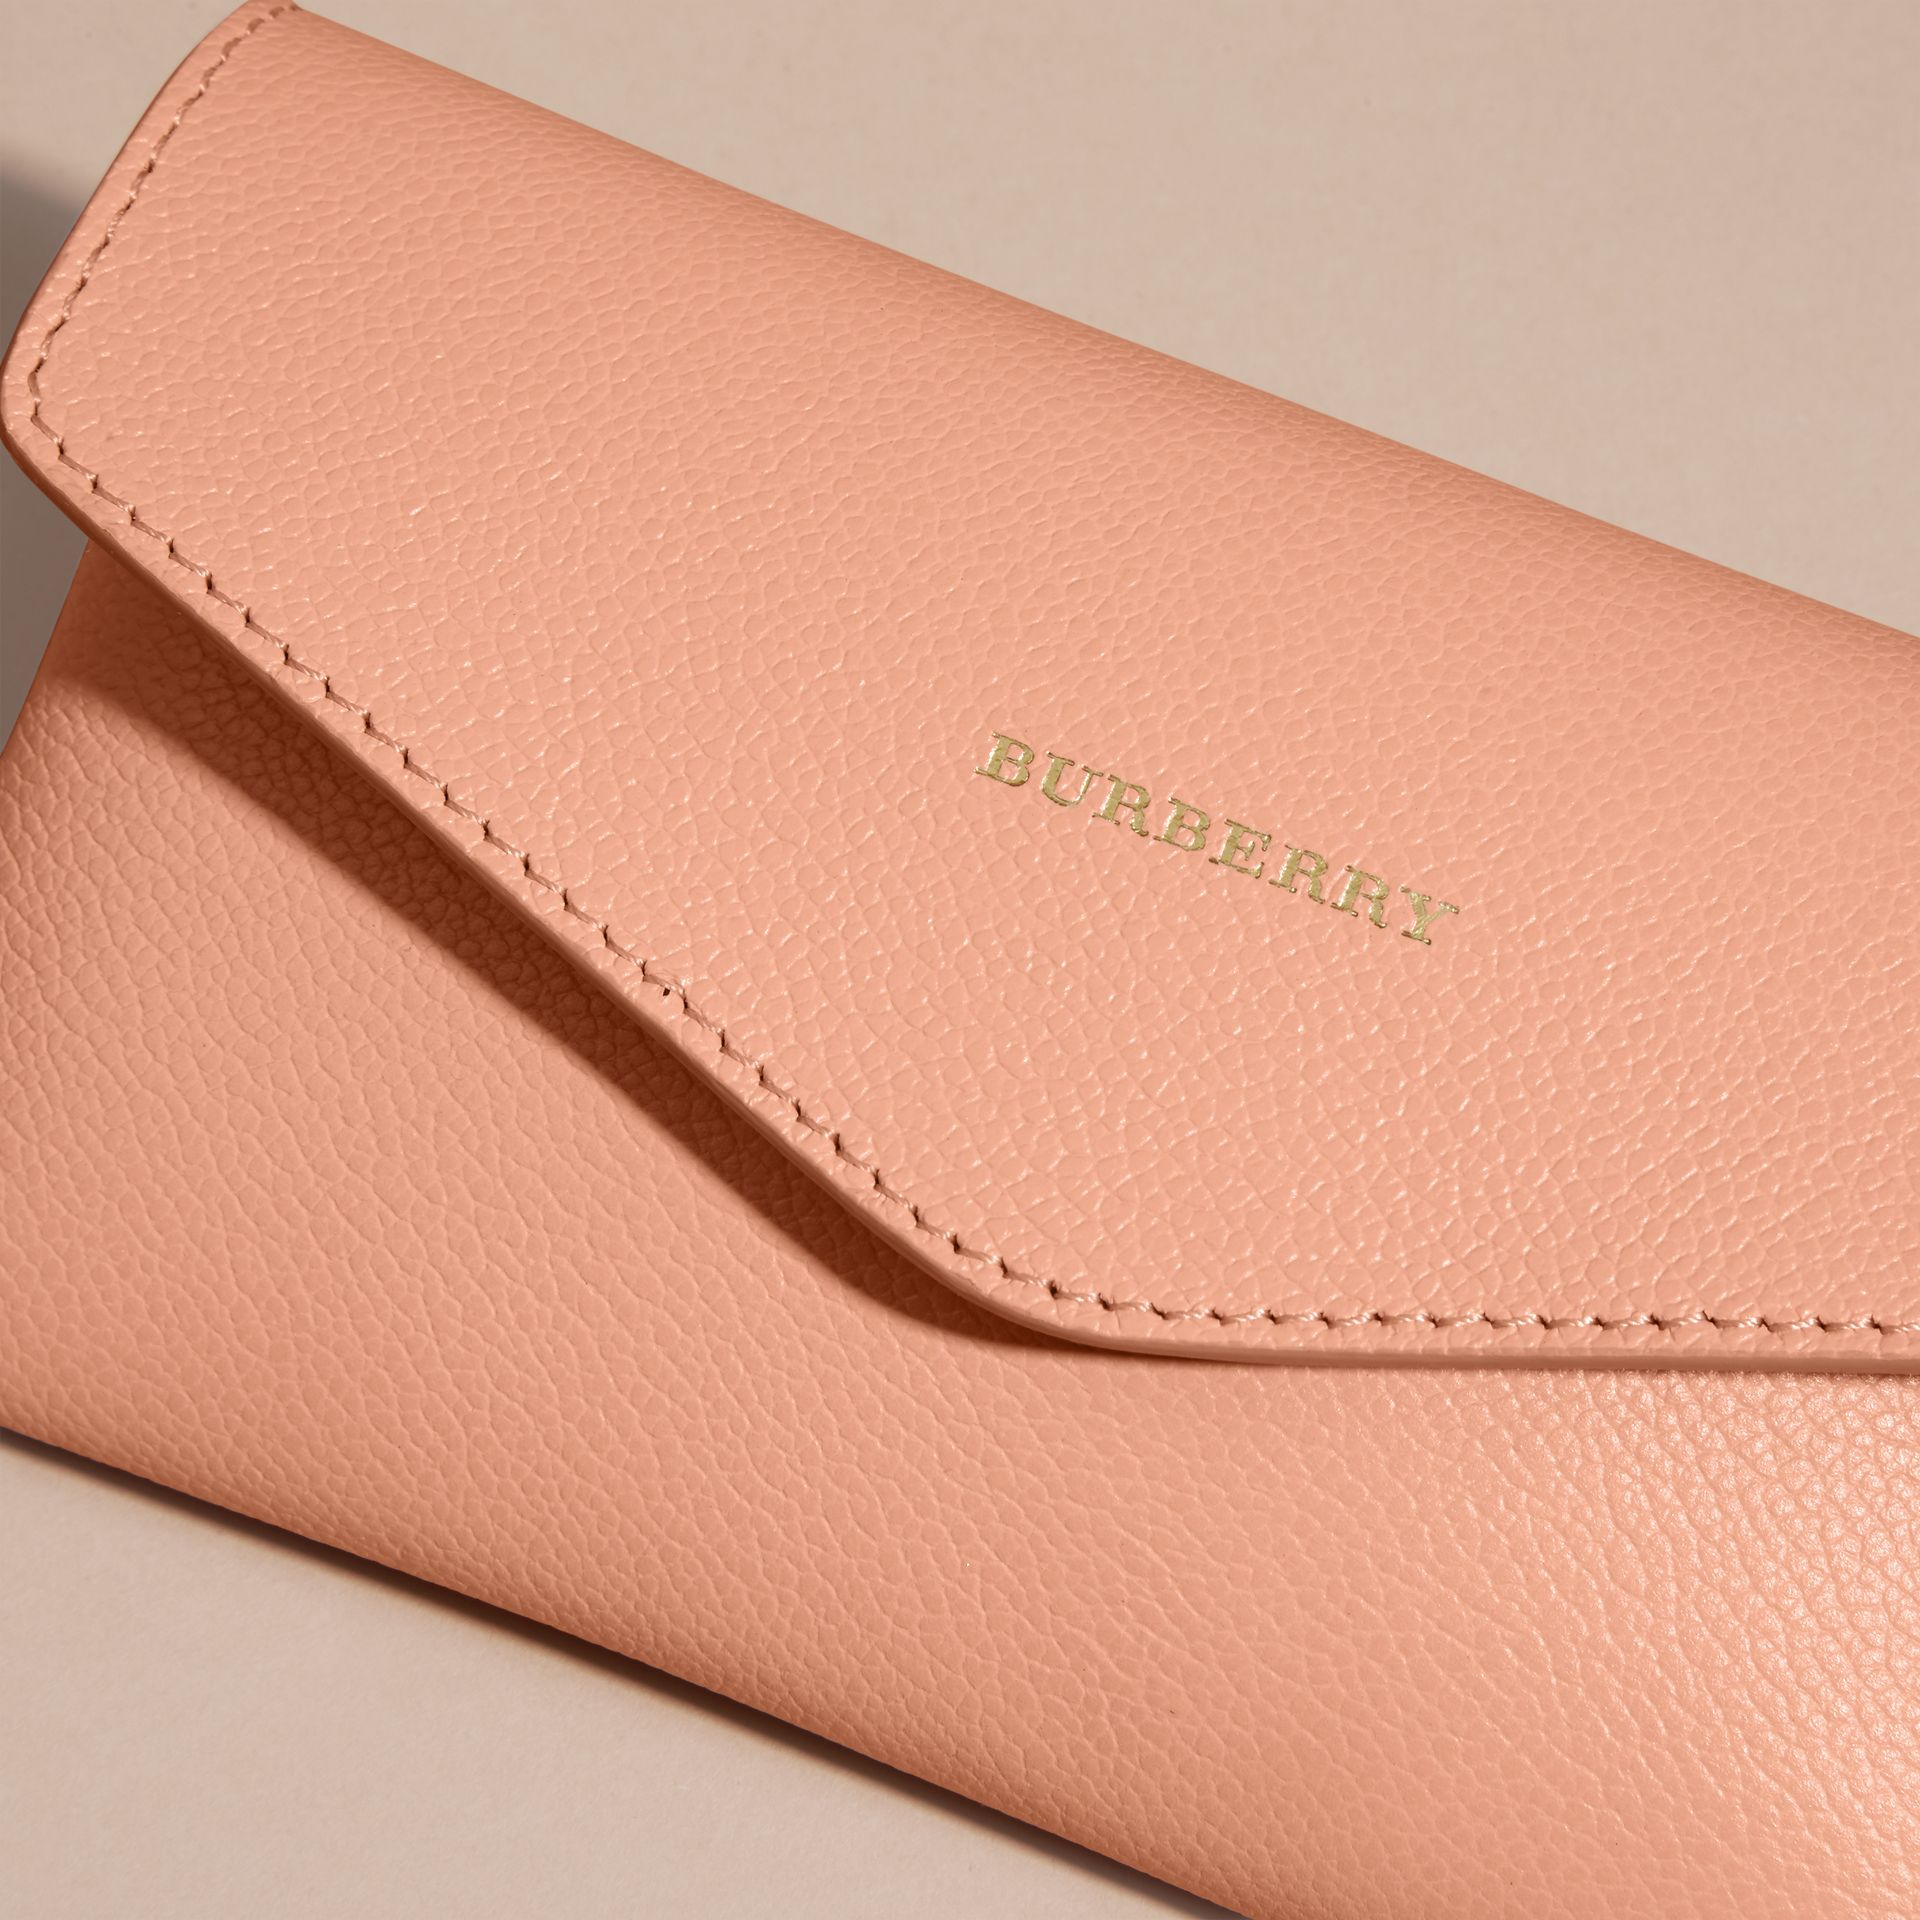 Leather Noughts and Crosses Set and Case in Pink Apricot | Burberry - gallery image 2